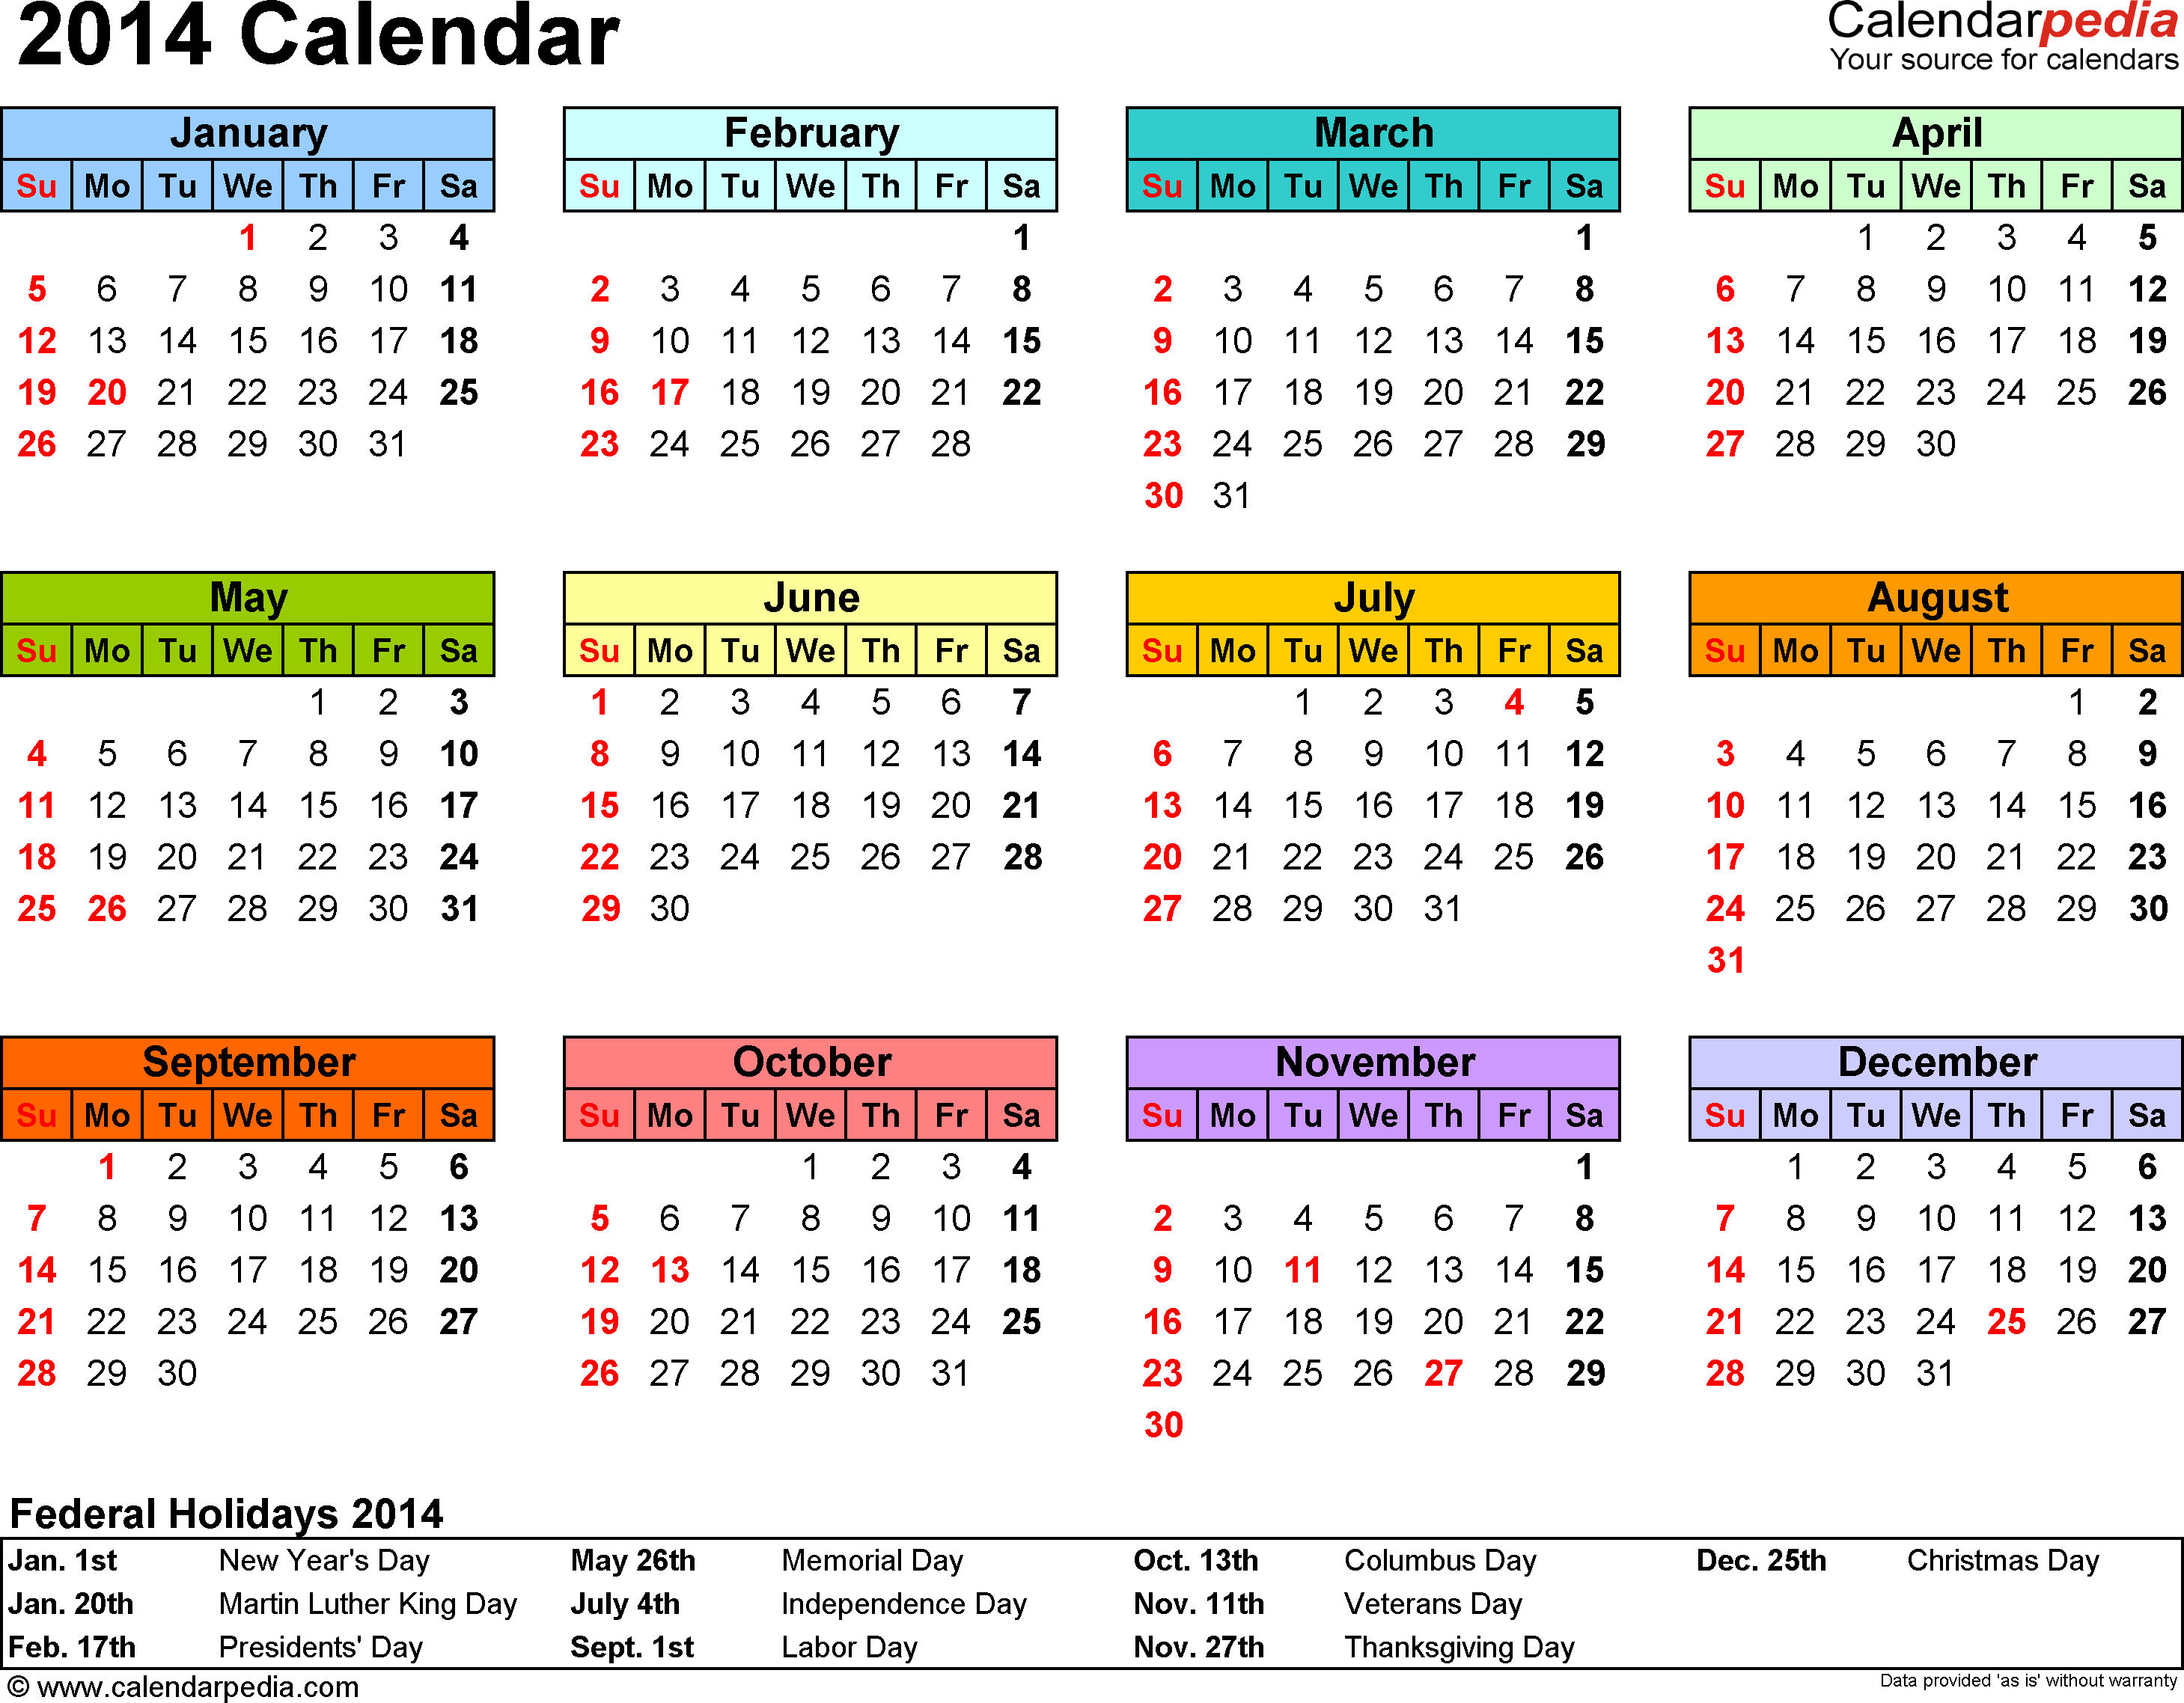 Template 7: 2014 Calendar for PDF, year at a glance, 1 page, in color